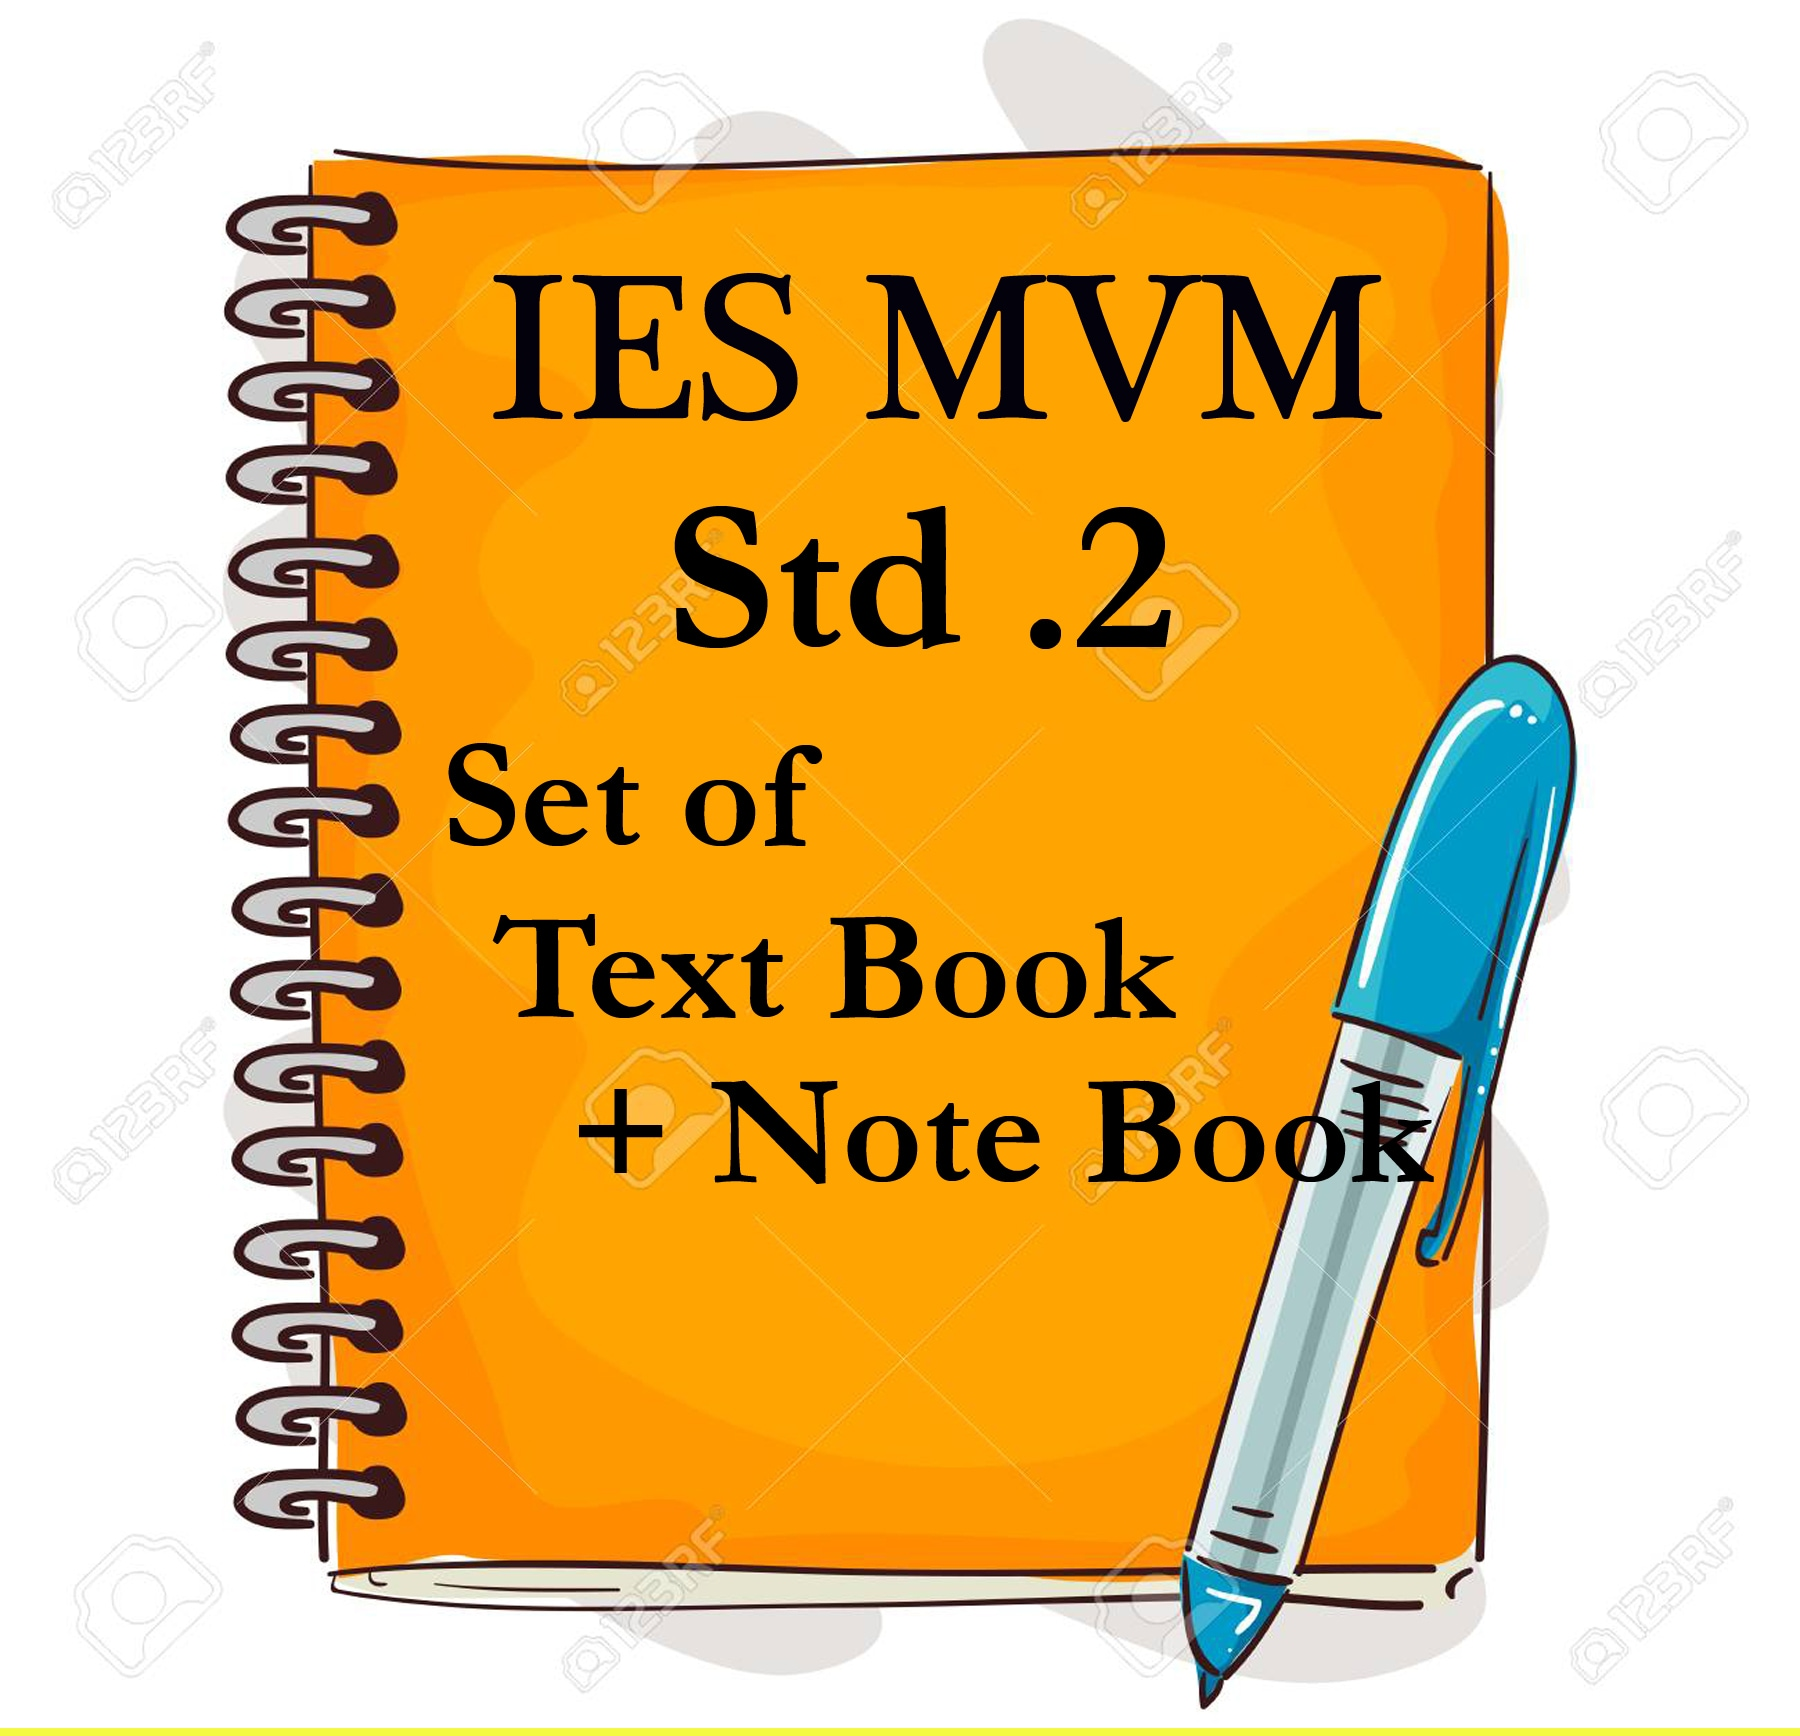 IES MVM STD .2 SET  OF TEXT BOOK + NOTE BOOK